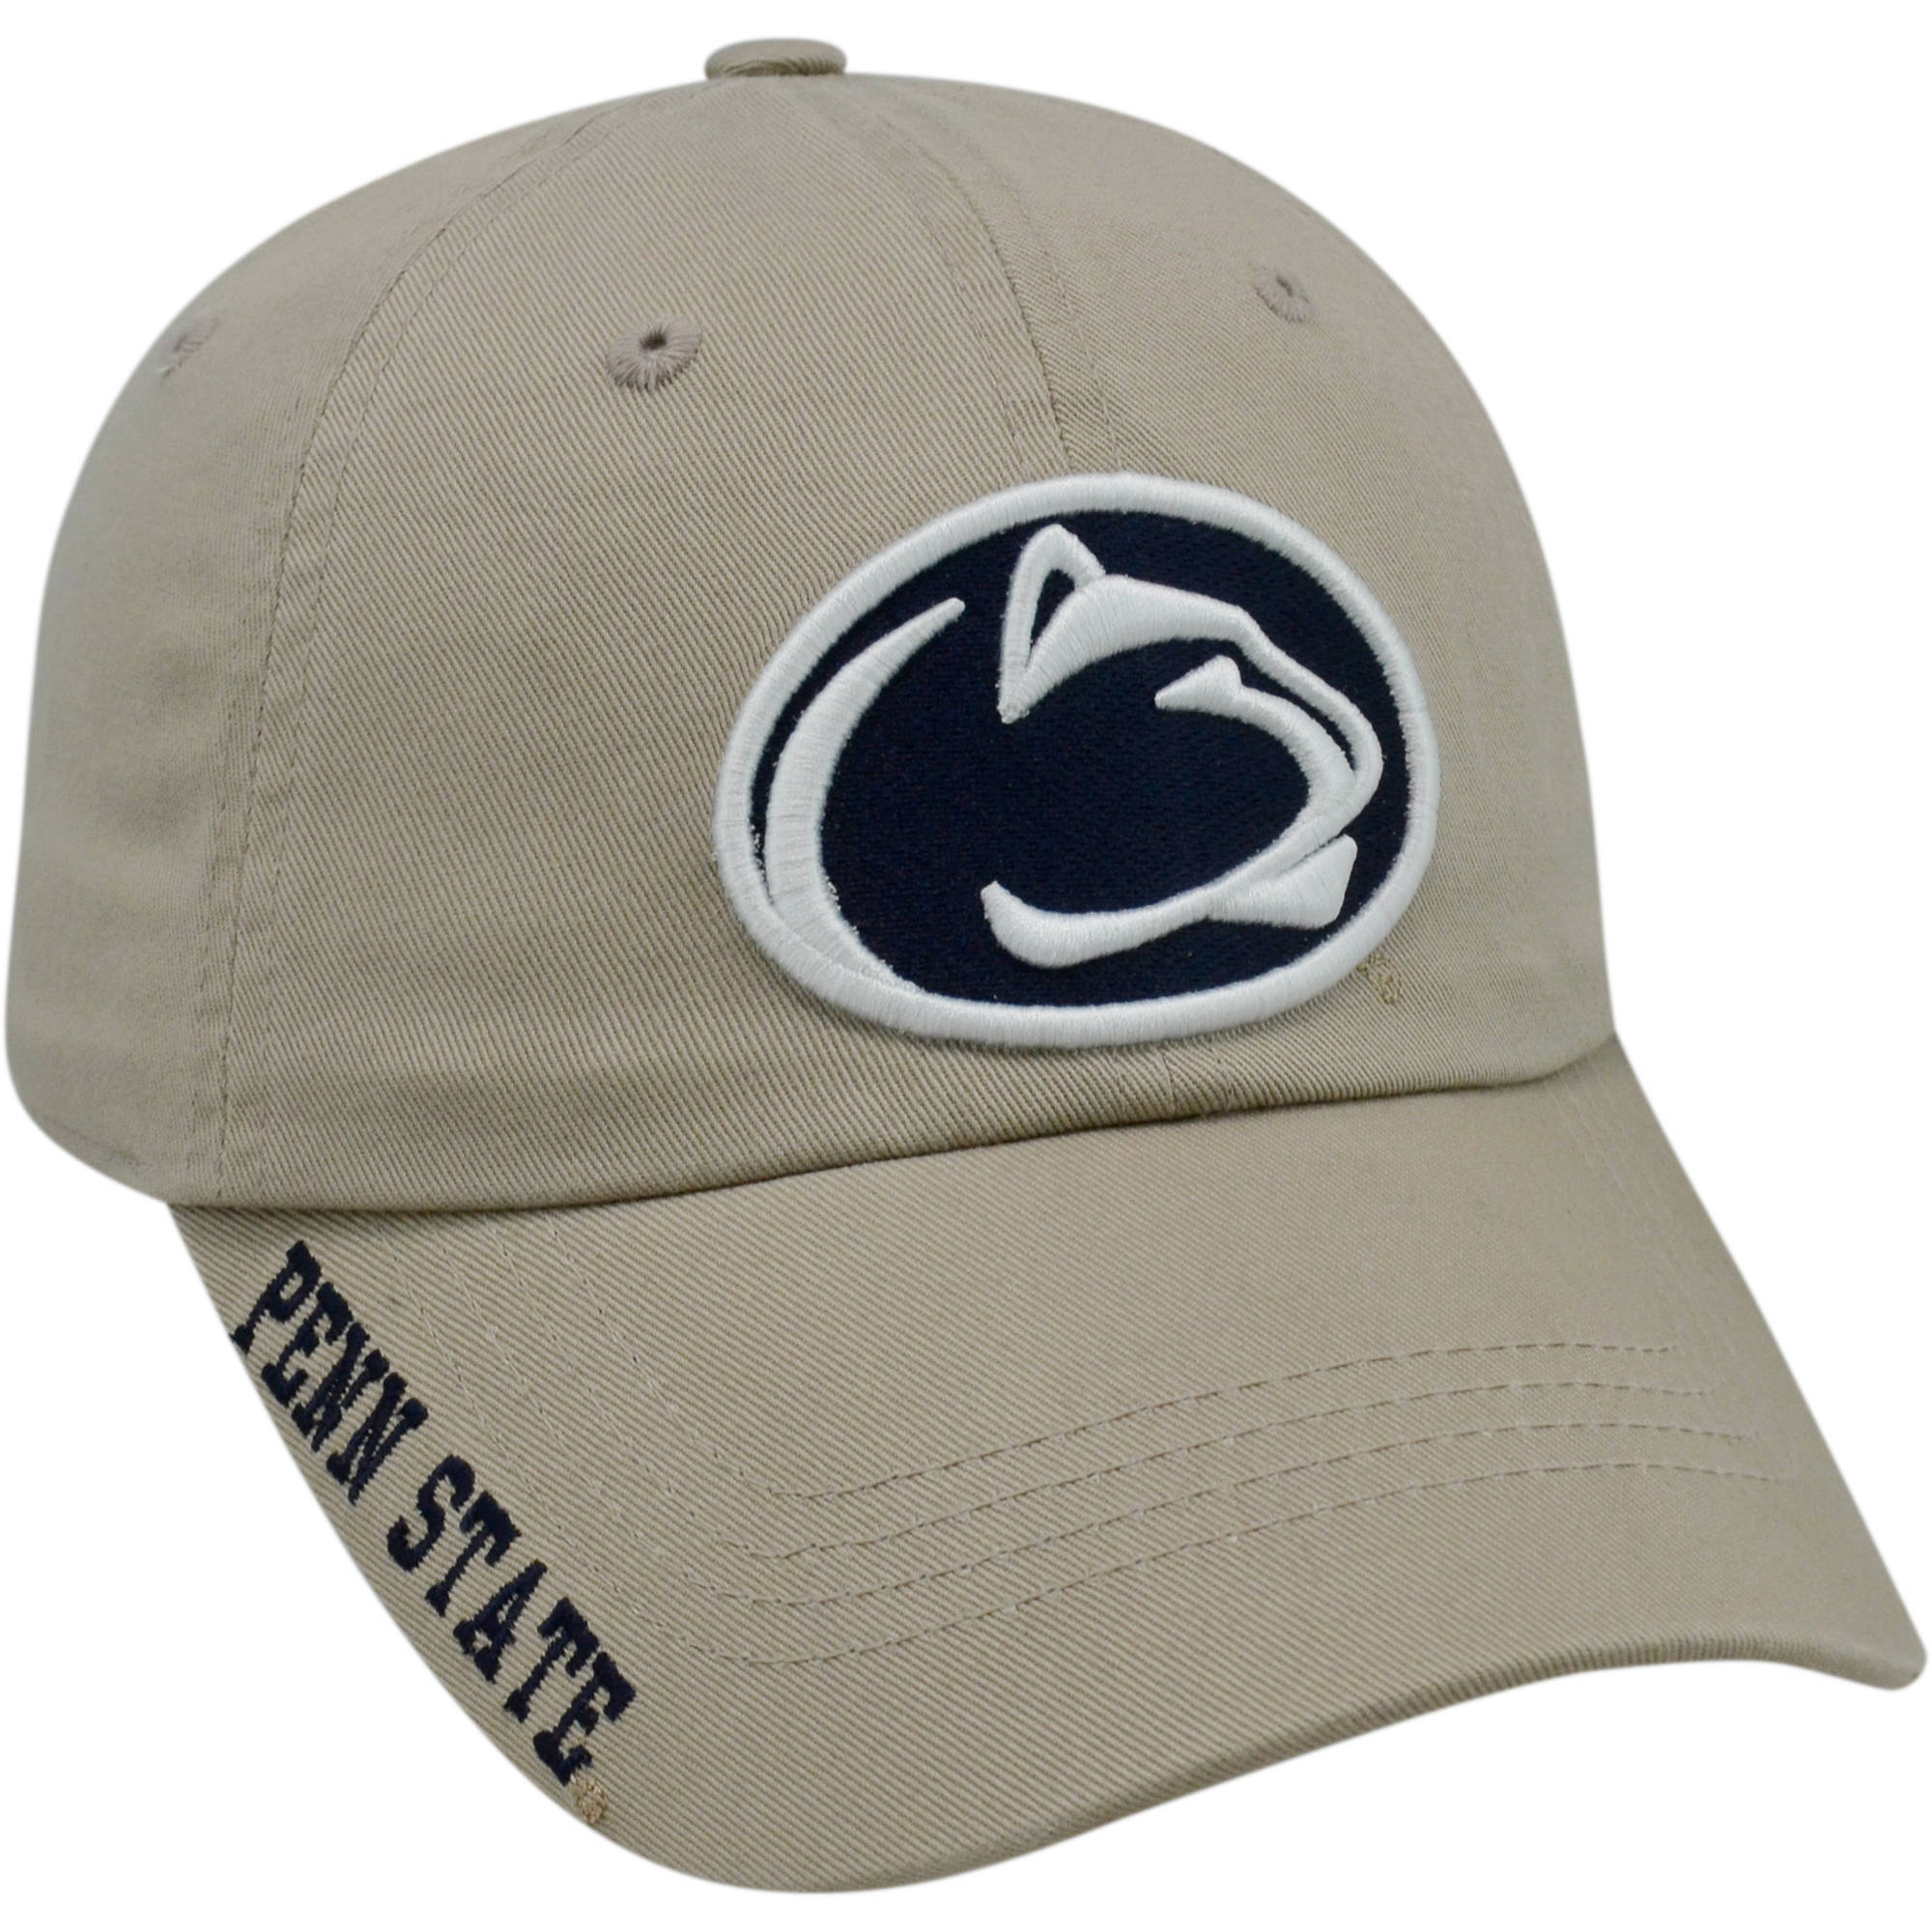 NCAA Men's Penn State Nittany Lions Away Cap